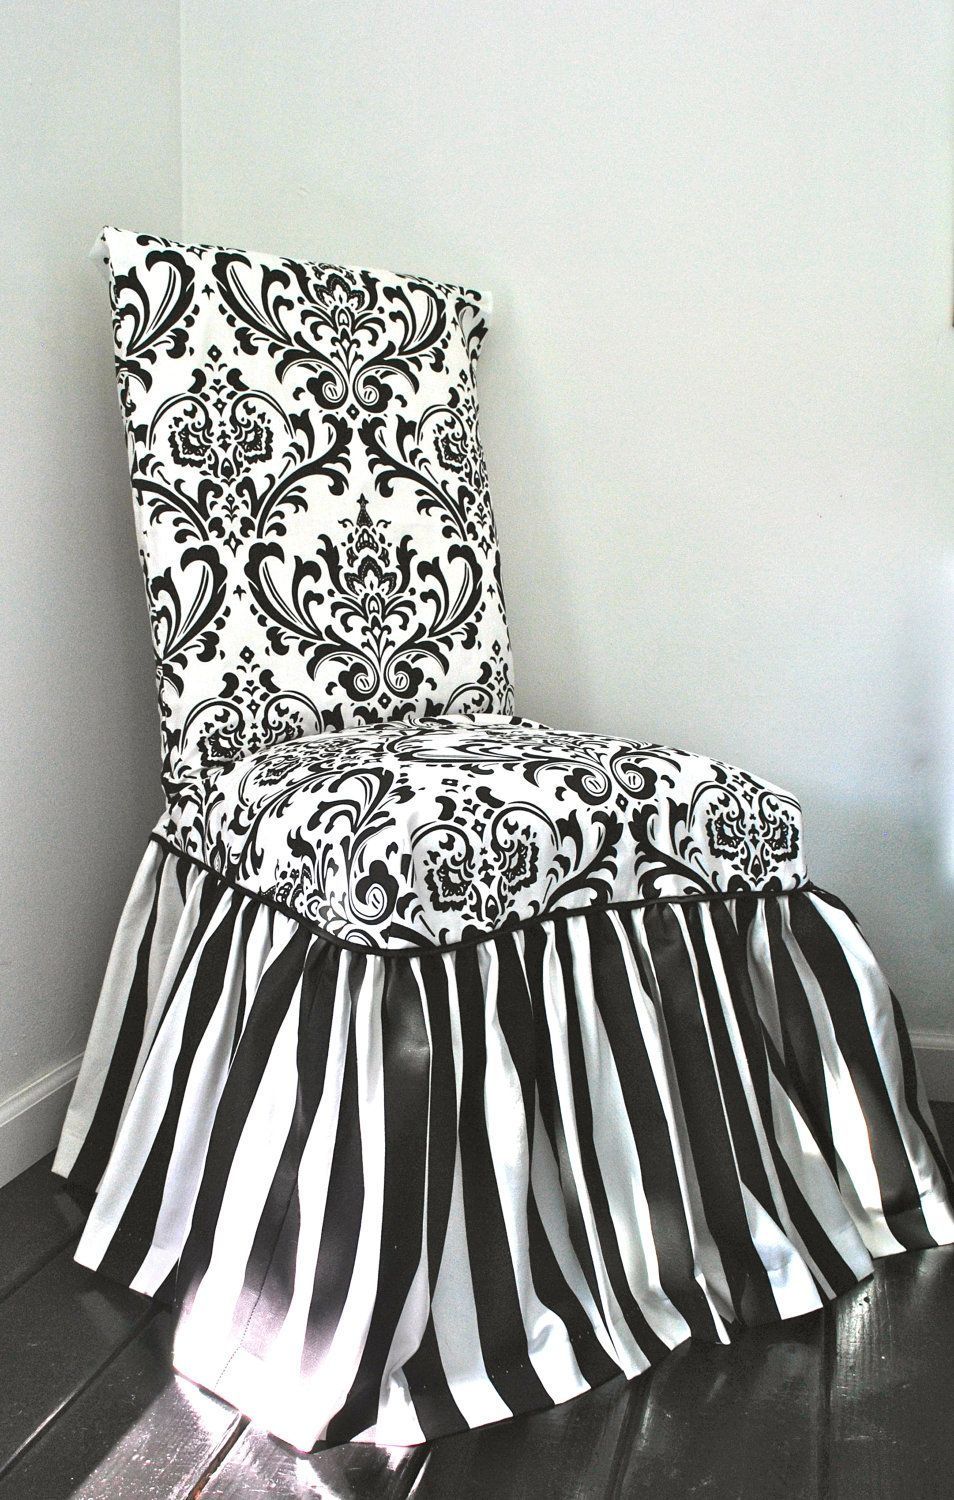 Damask and Stripe Chair Slipcover | Chair slipcovers, Skirts and ...